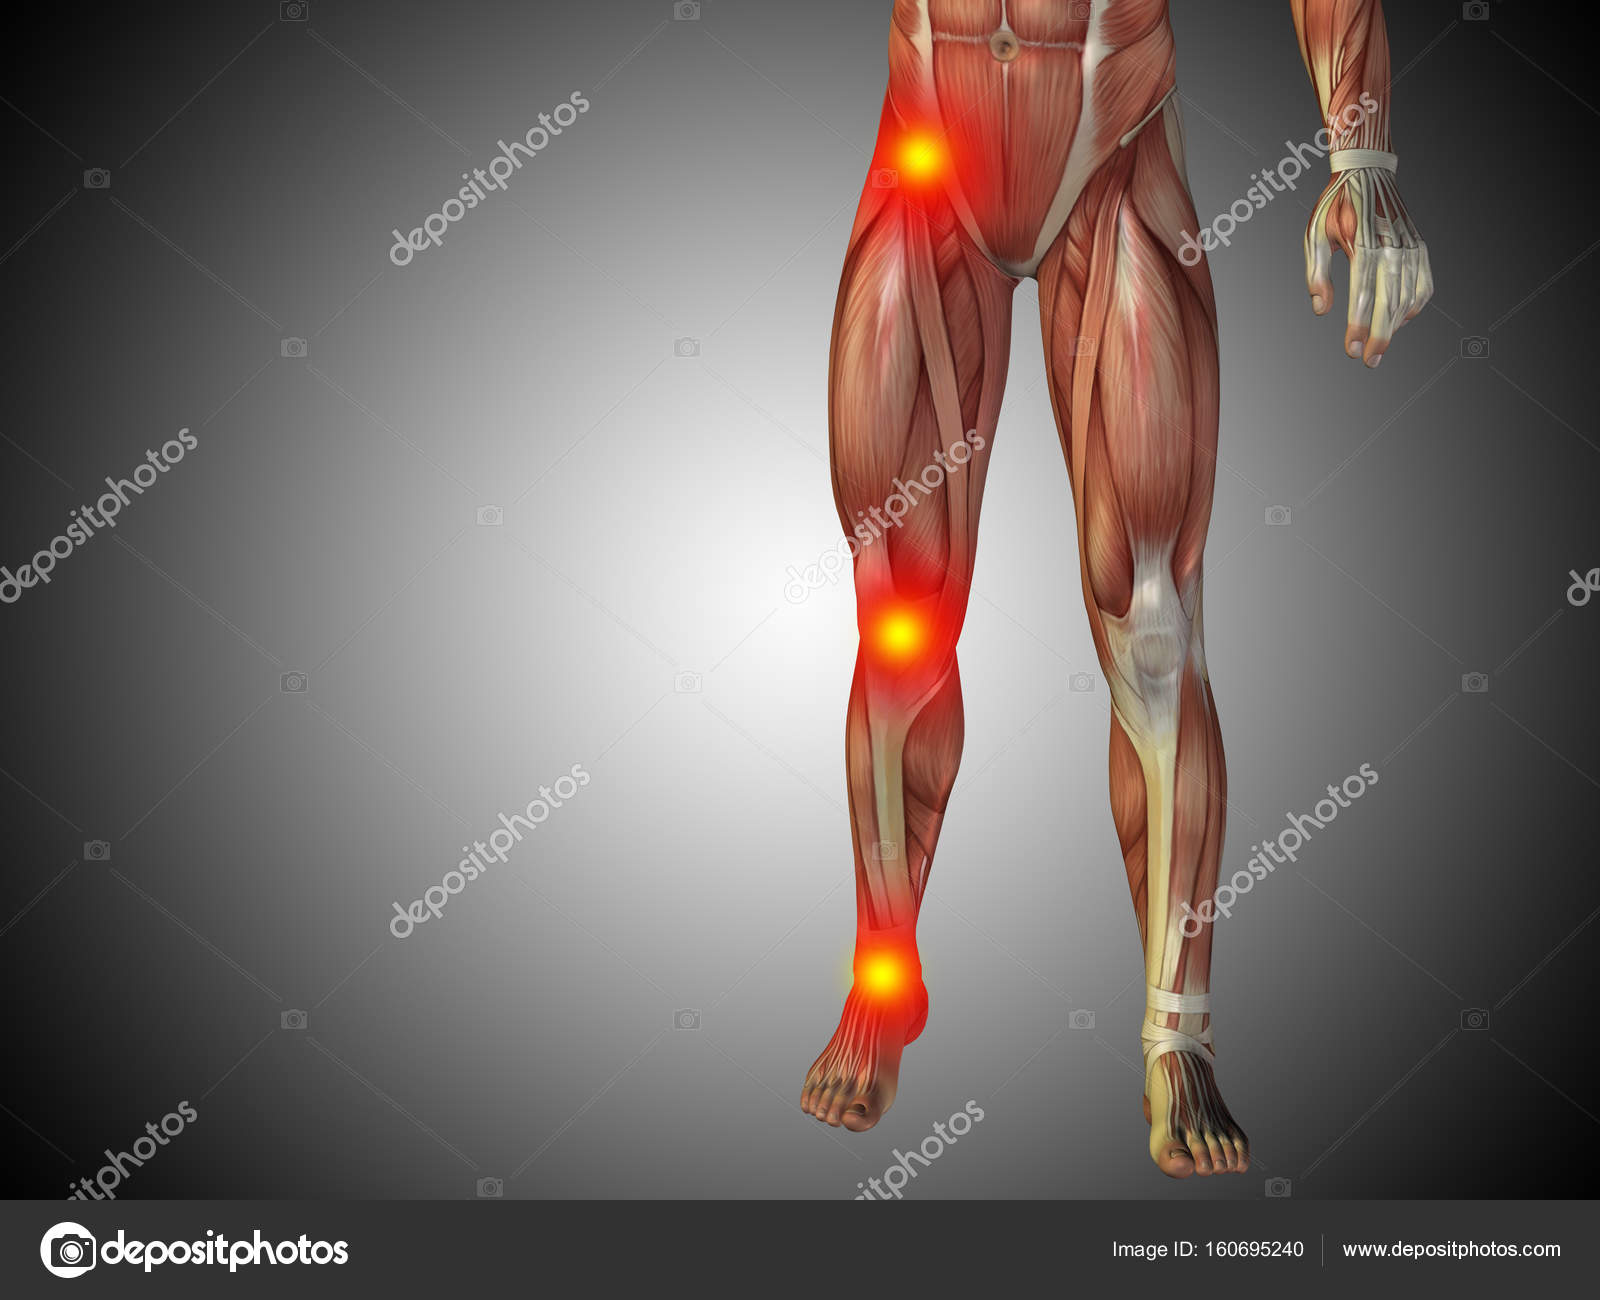 Human Anatomy Lower Body Stock Photo Design36 160695240